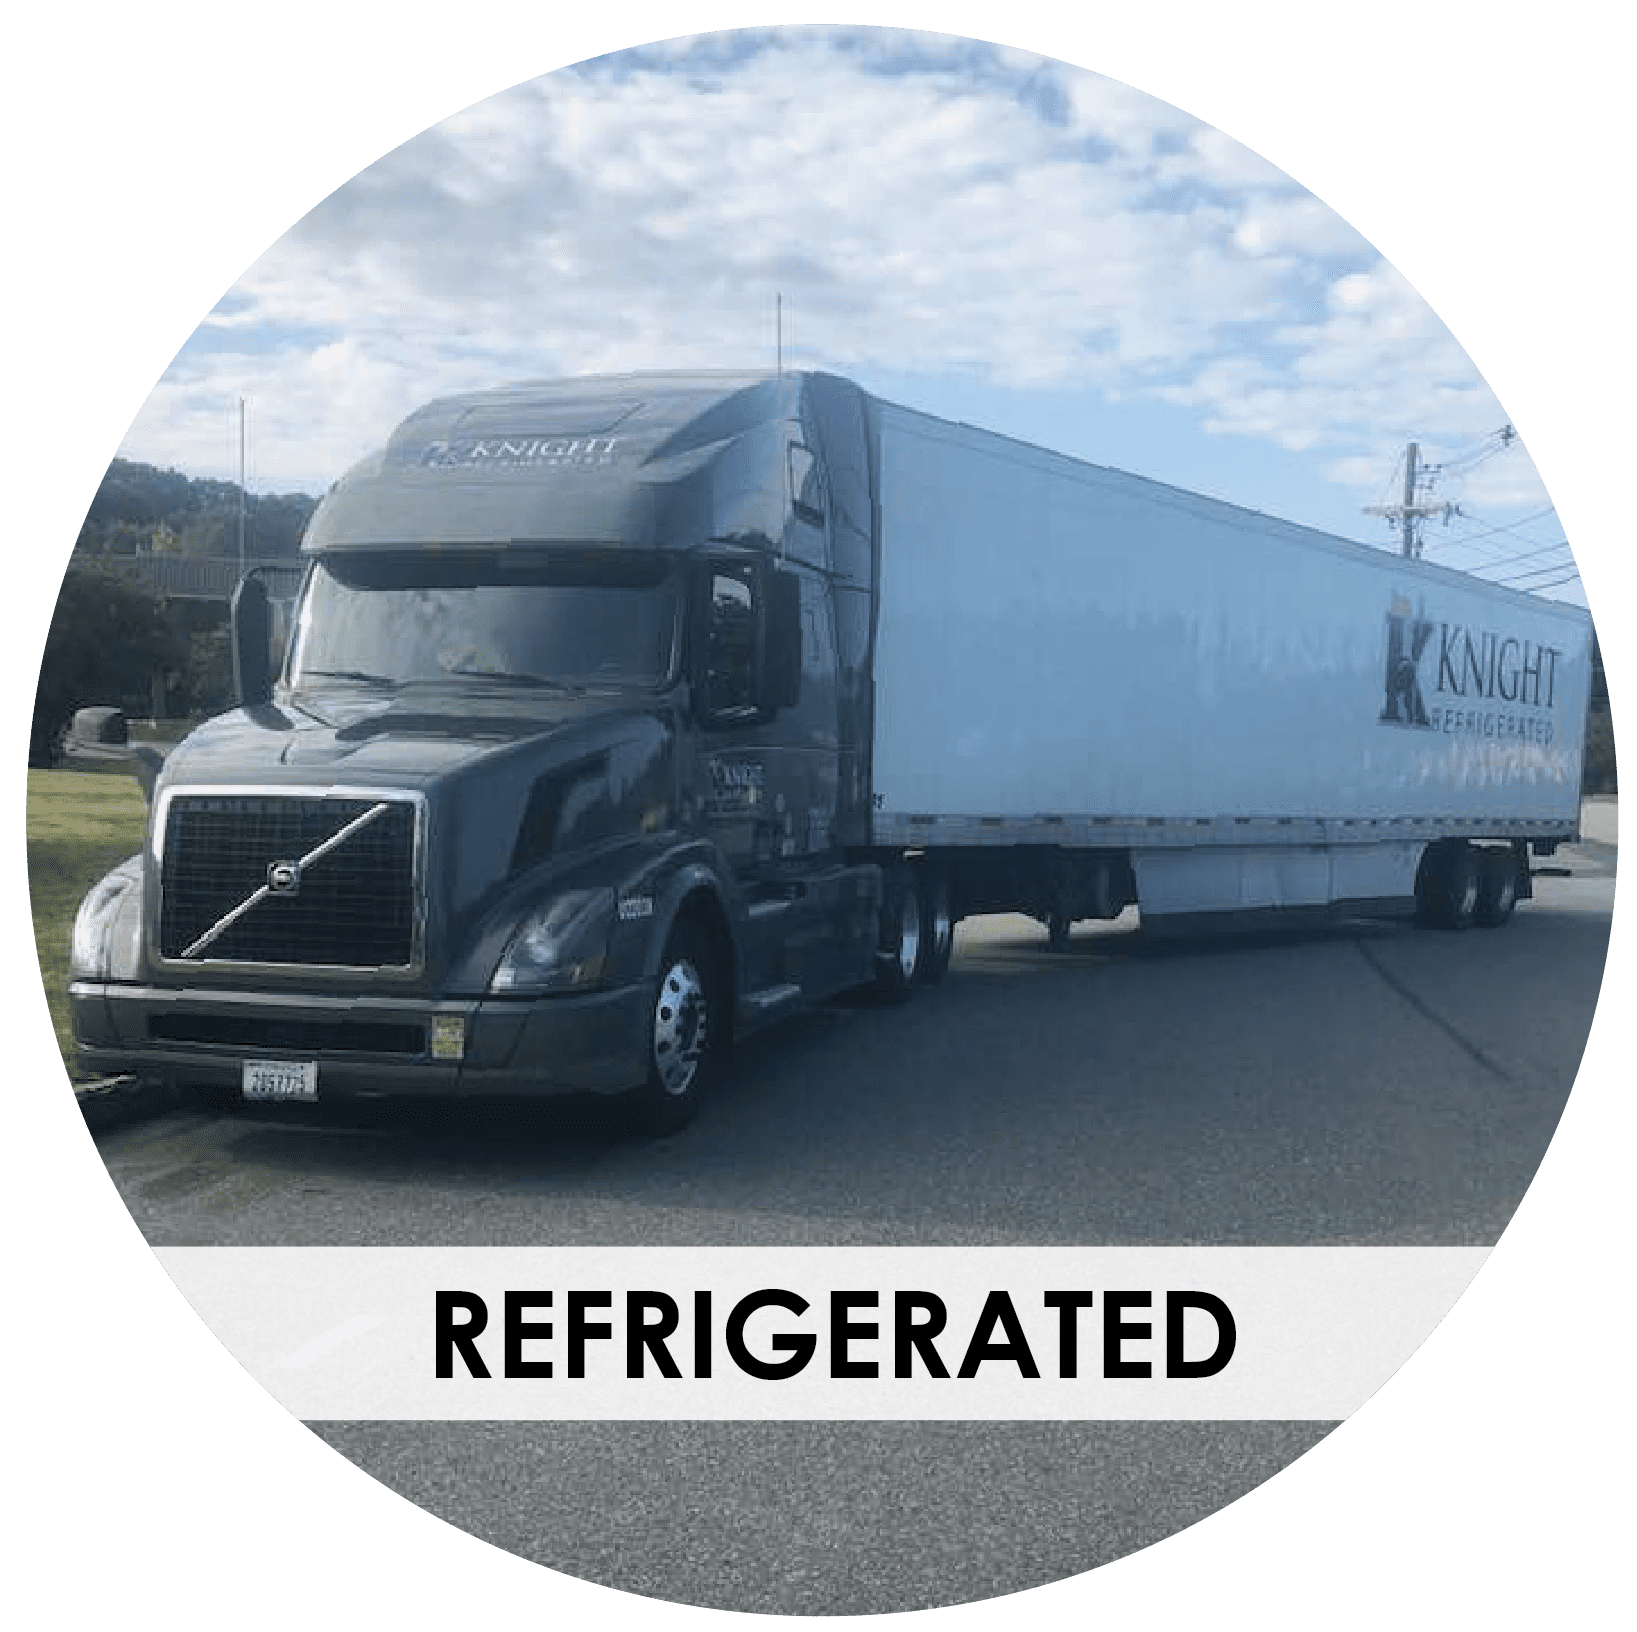 Knight Transportation refrigerated truck parked in large lot